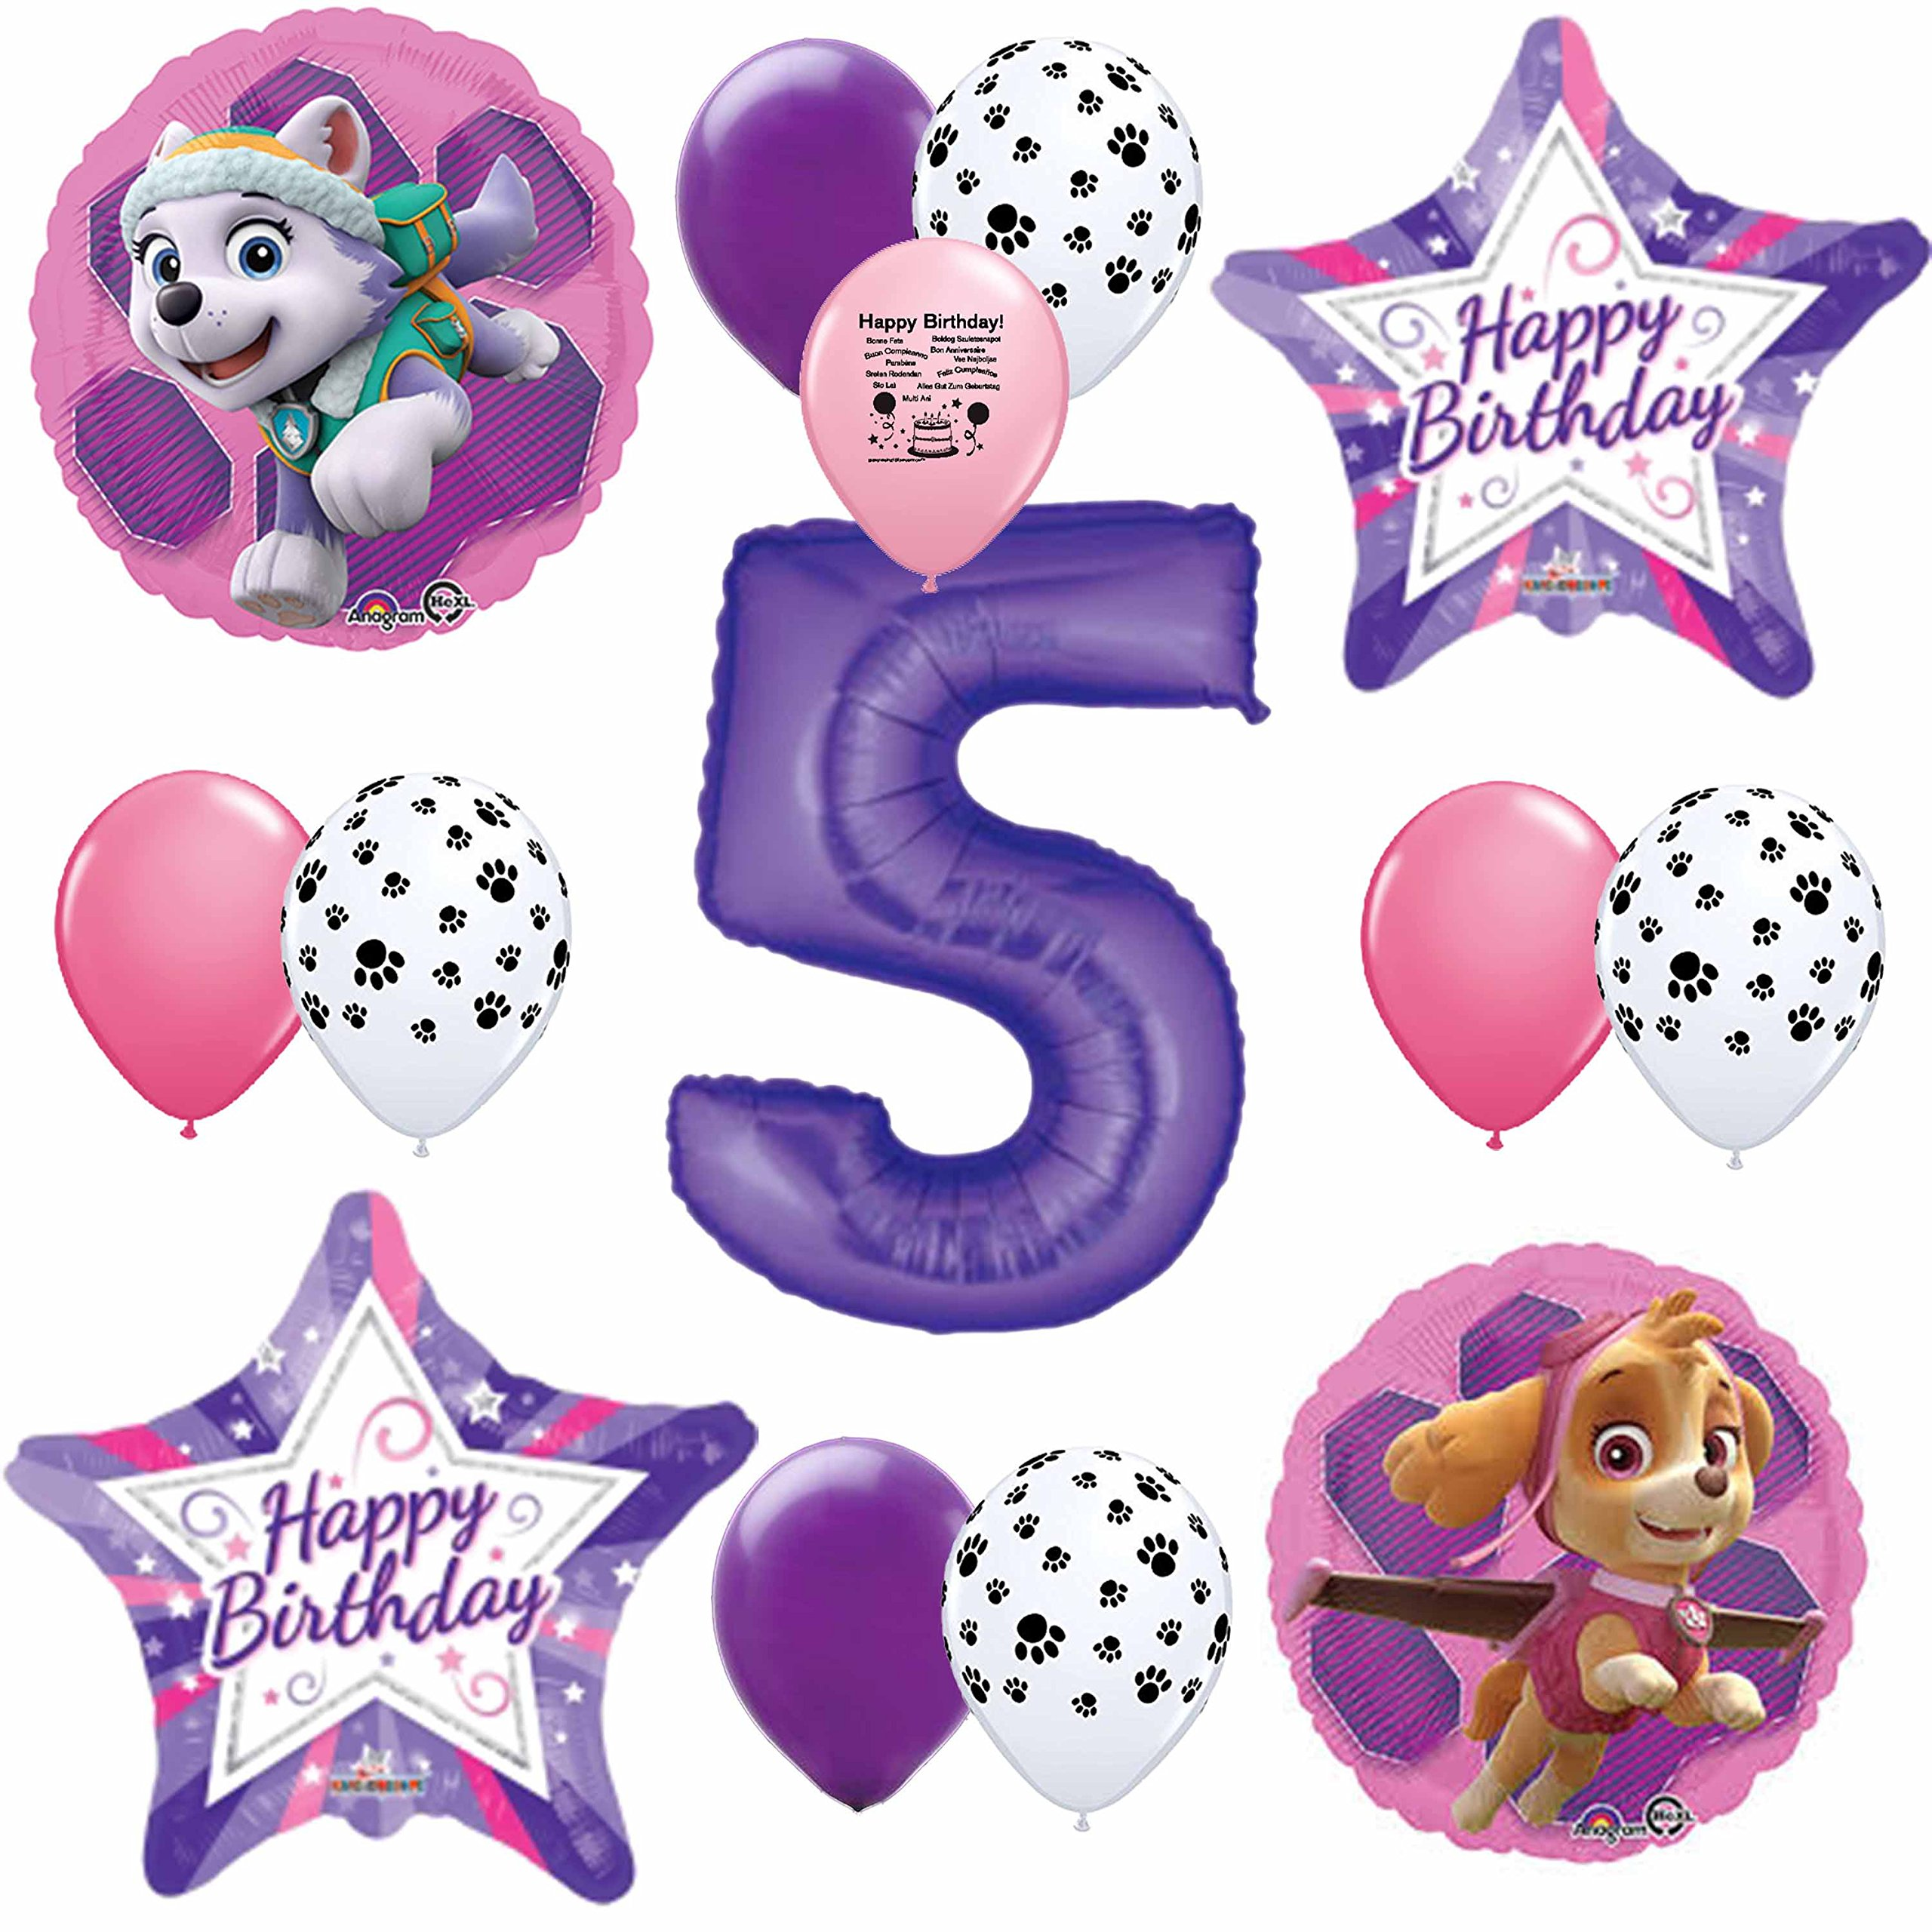 Details About Skye Pink Paw Patrol Happy 5th Birthday Balloon Set